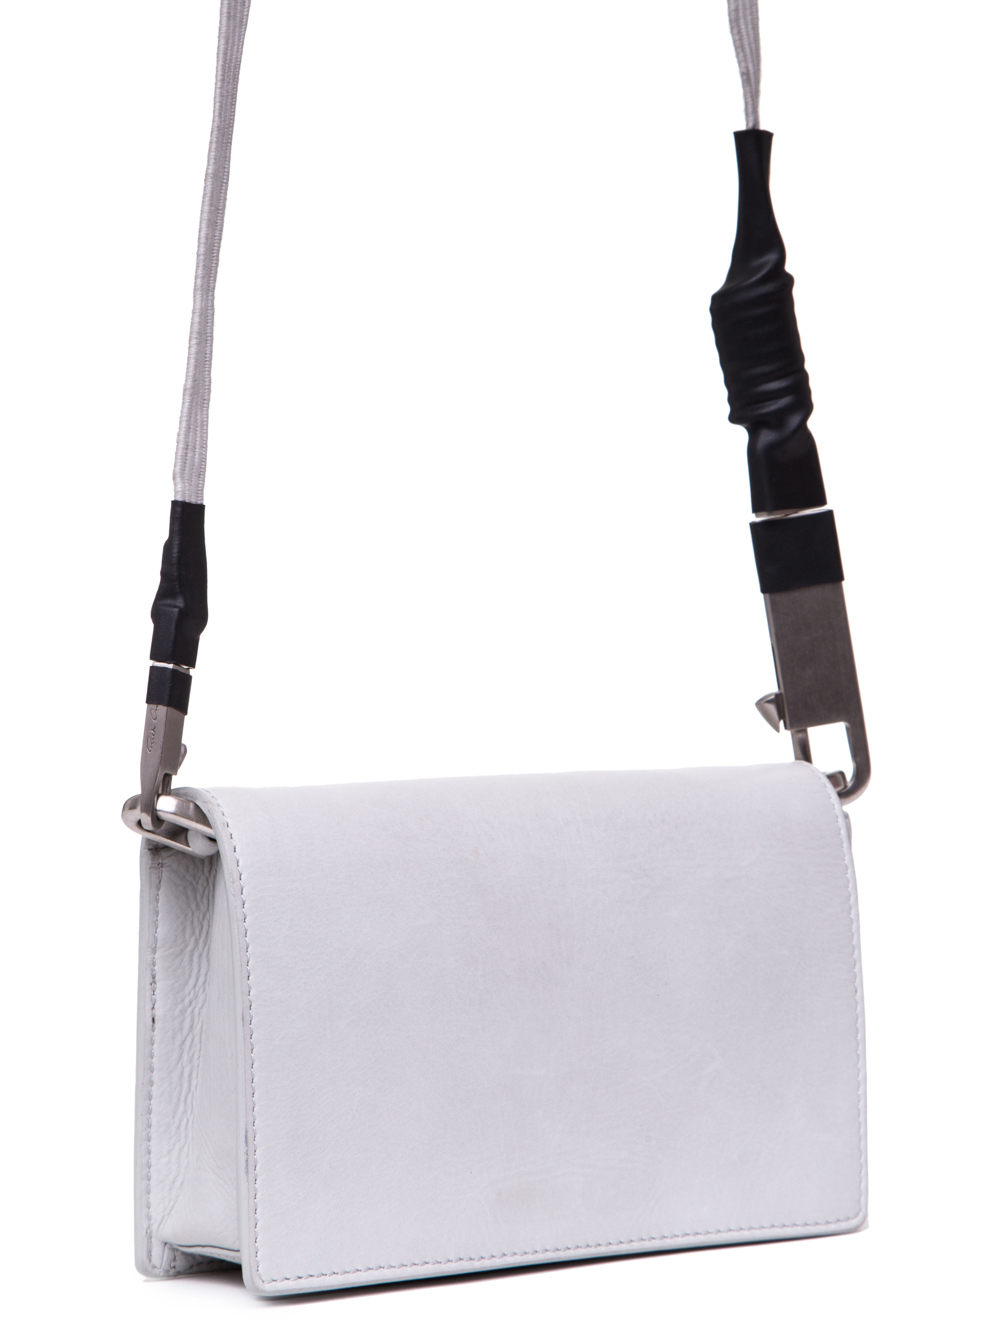 RICK OWENS SS19 BABEL LUNCH BAG IN OYSTER LIGHT GREY BABY CALF LEATHER